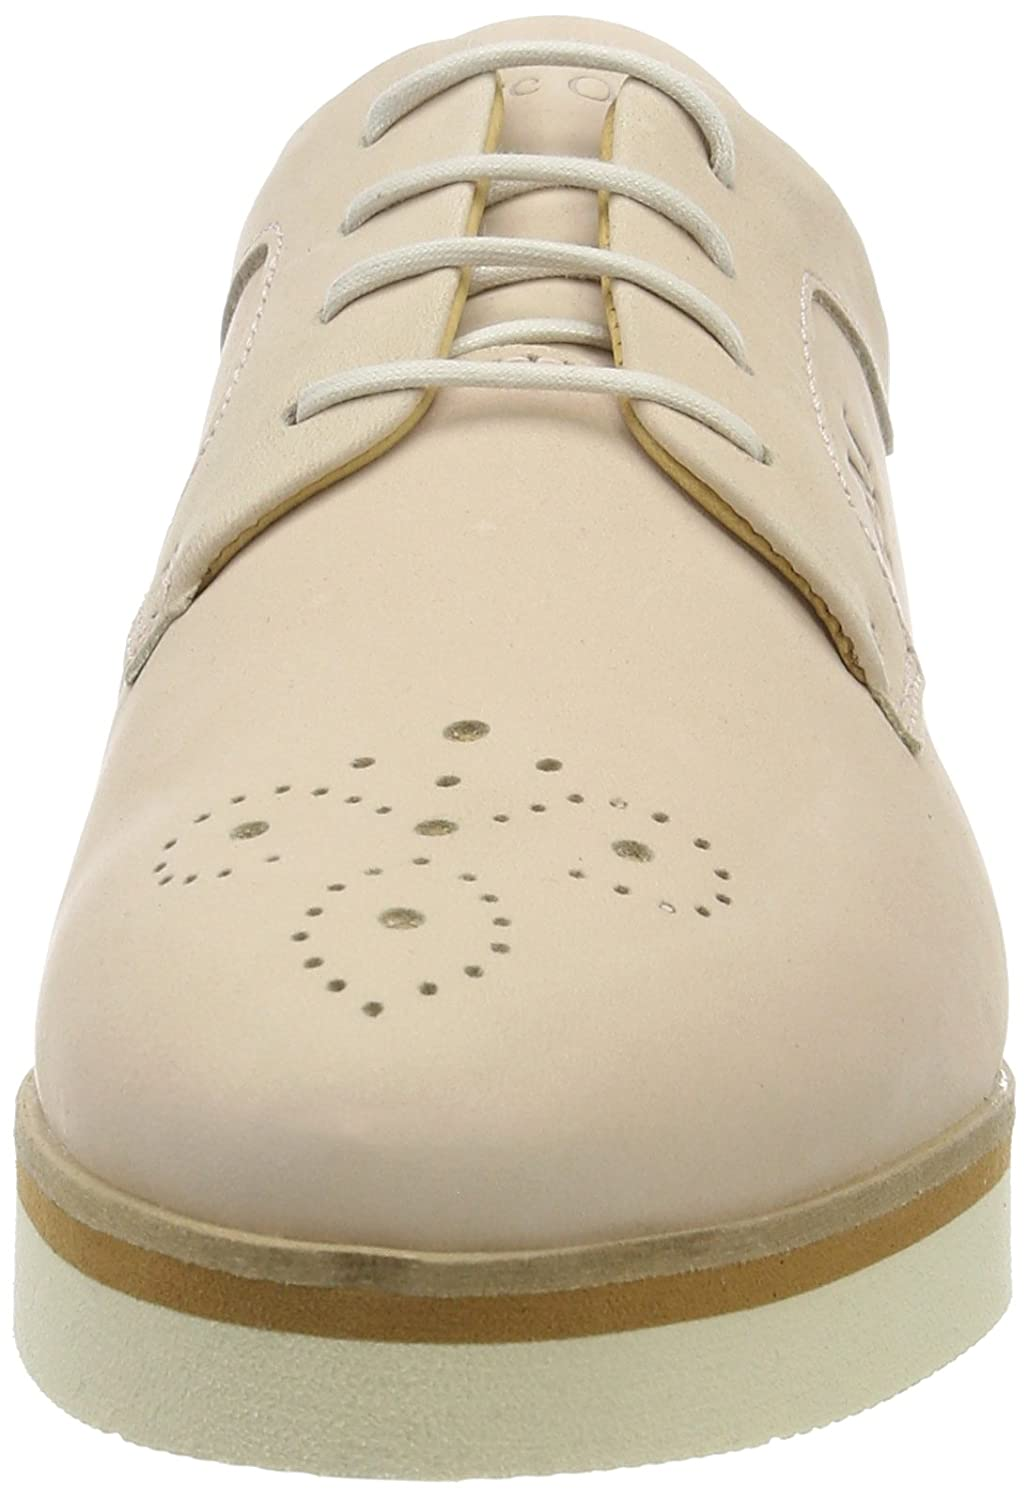 Womens 70113853401200 Lace up Brogues Marc O'Polo zo2dn